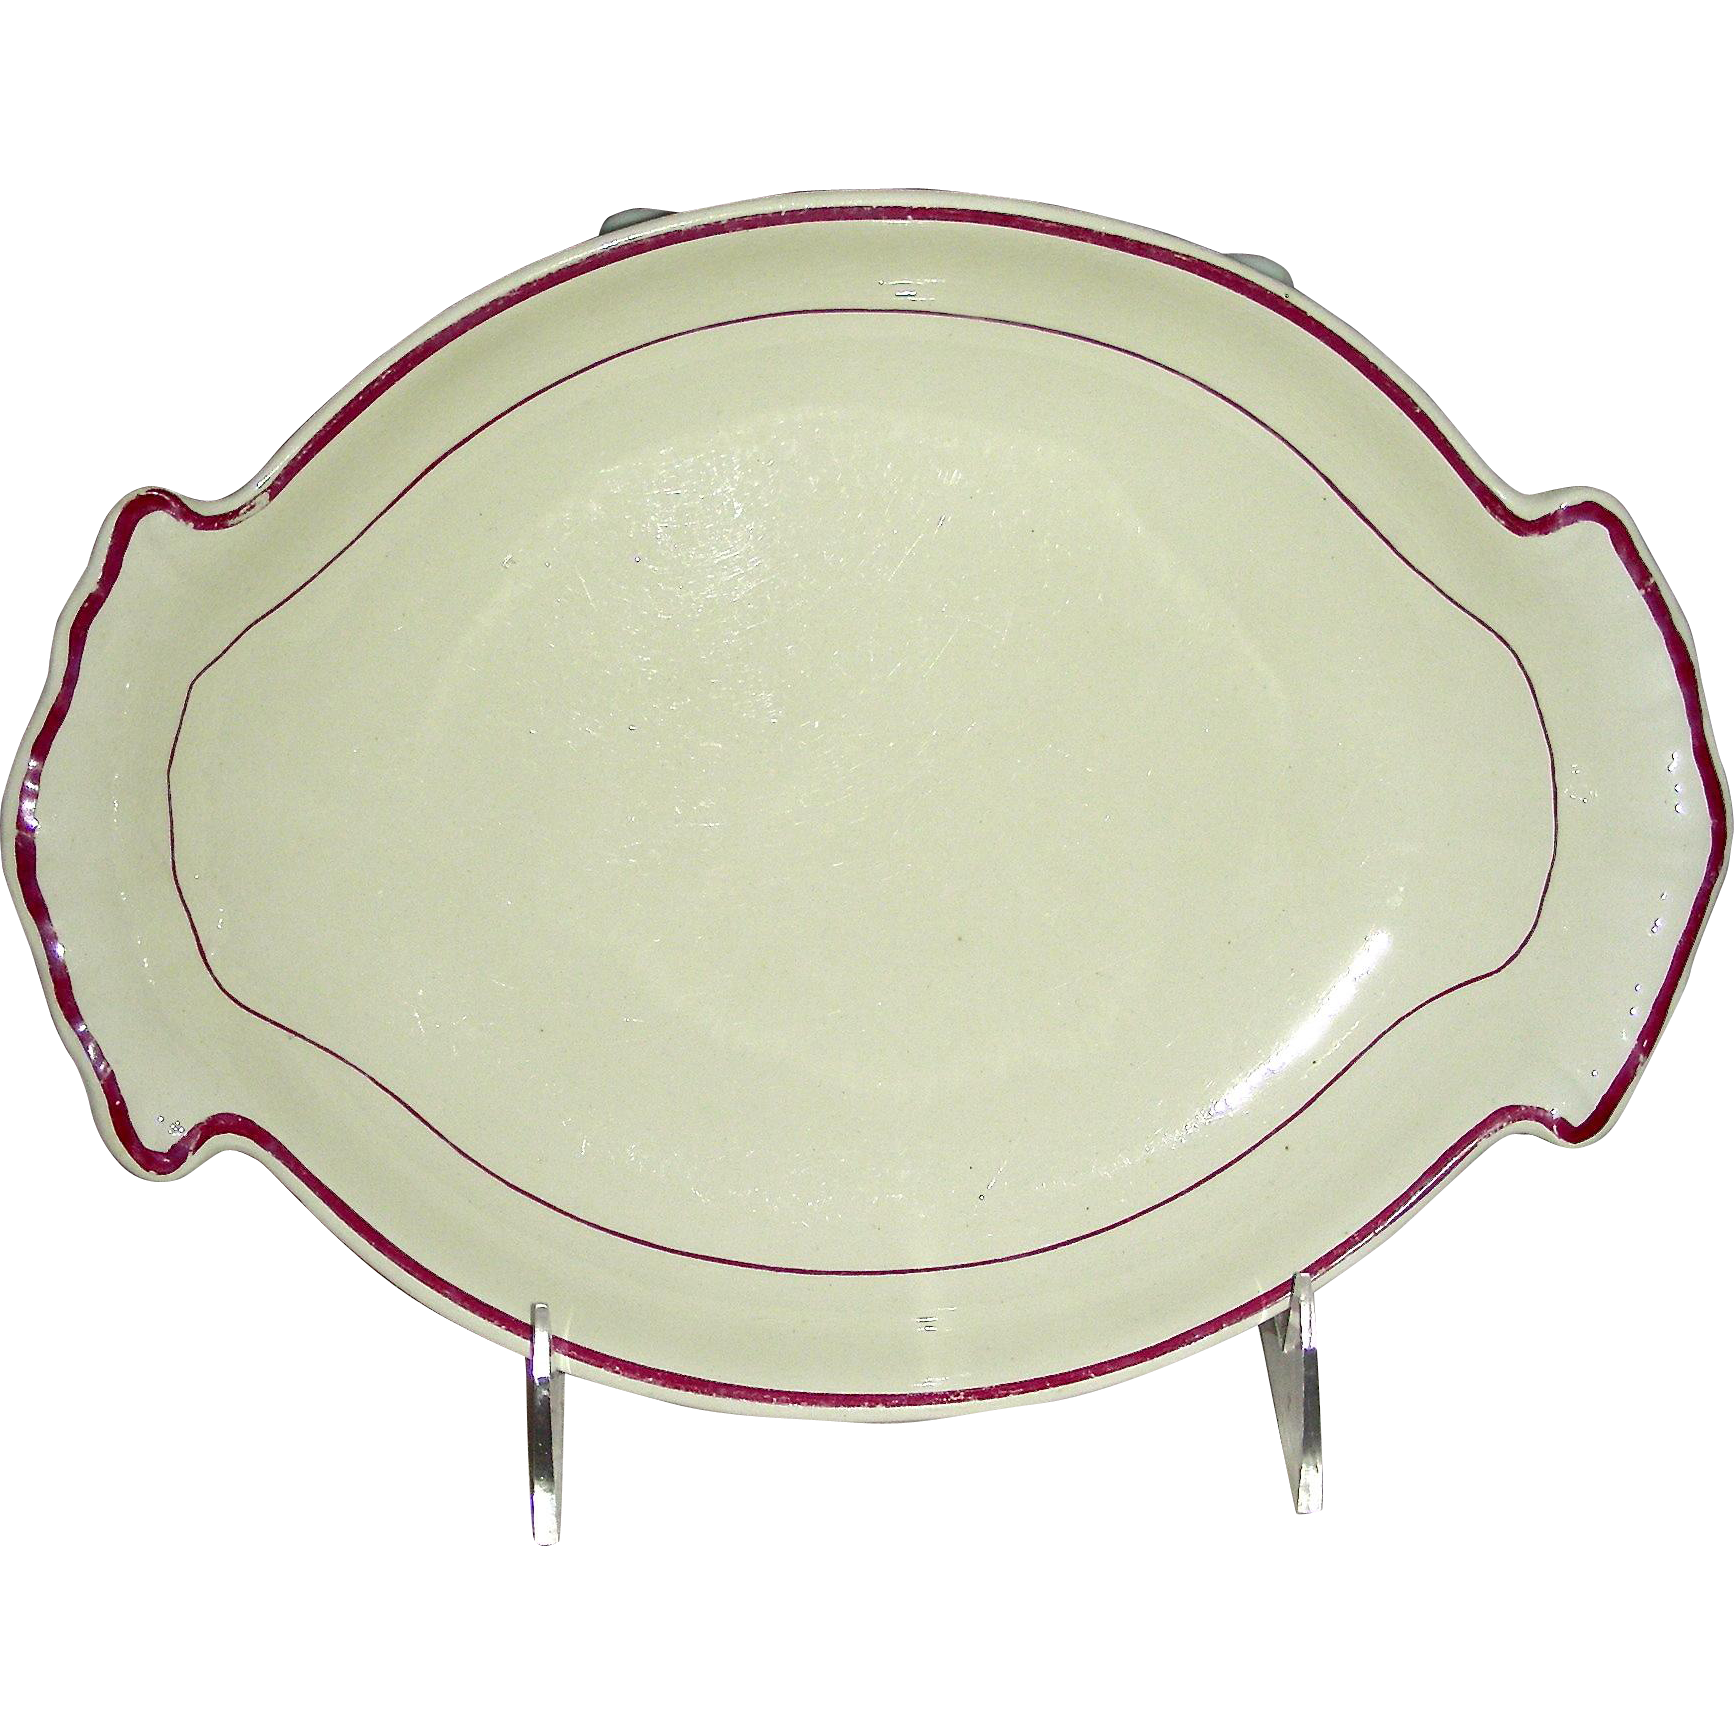 English Creamware Dessert Dish w/ Rare Purple Enameled Highlight, Marked Davenport, c. 1820